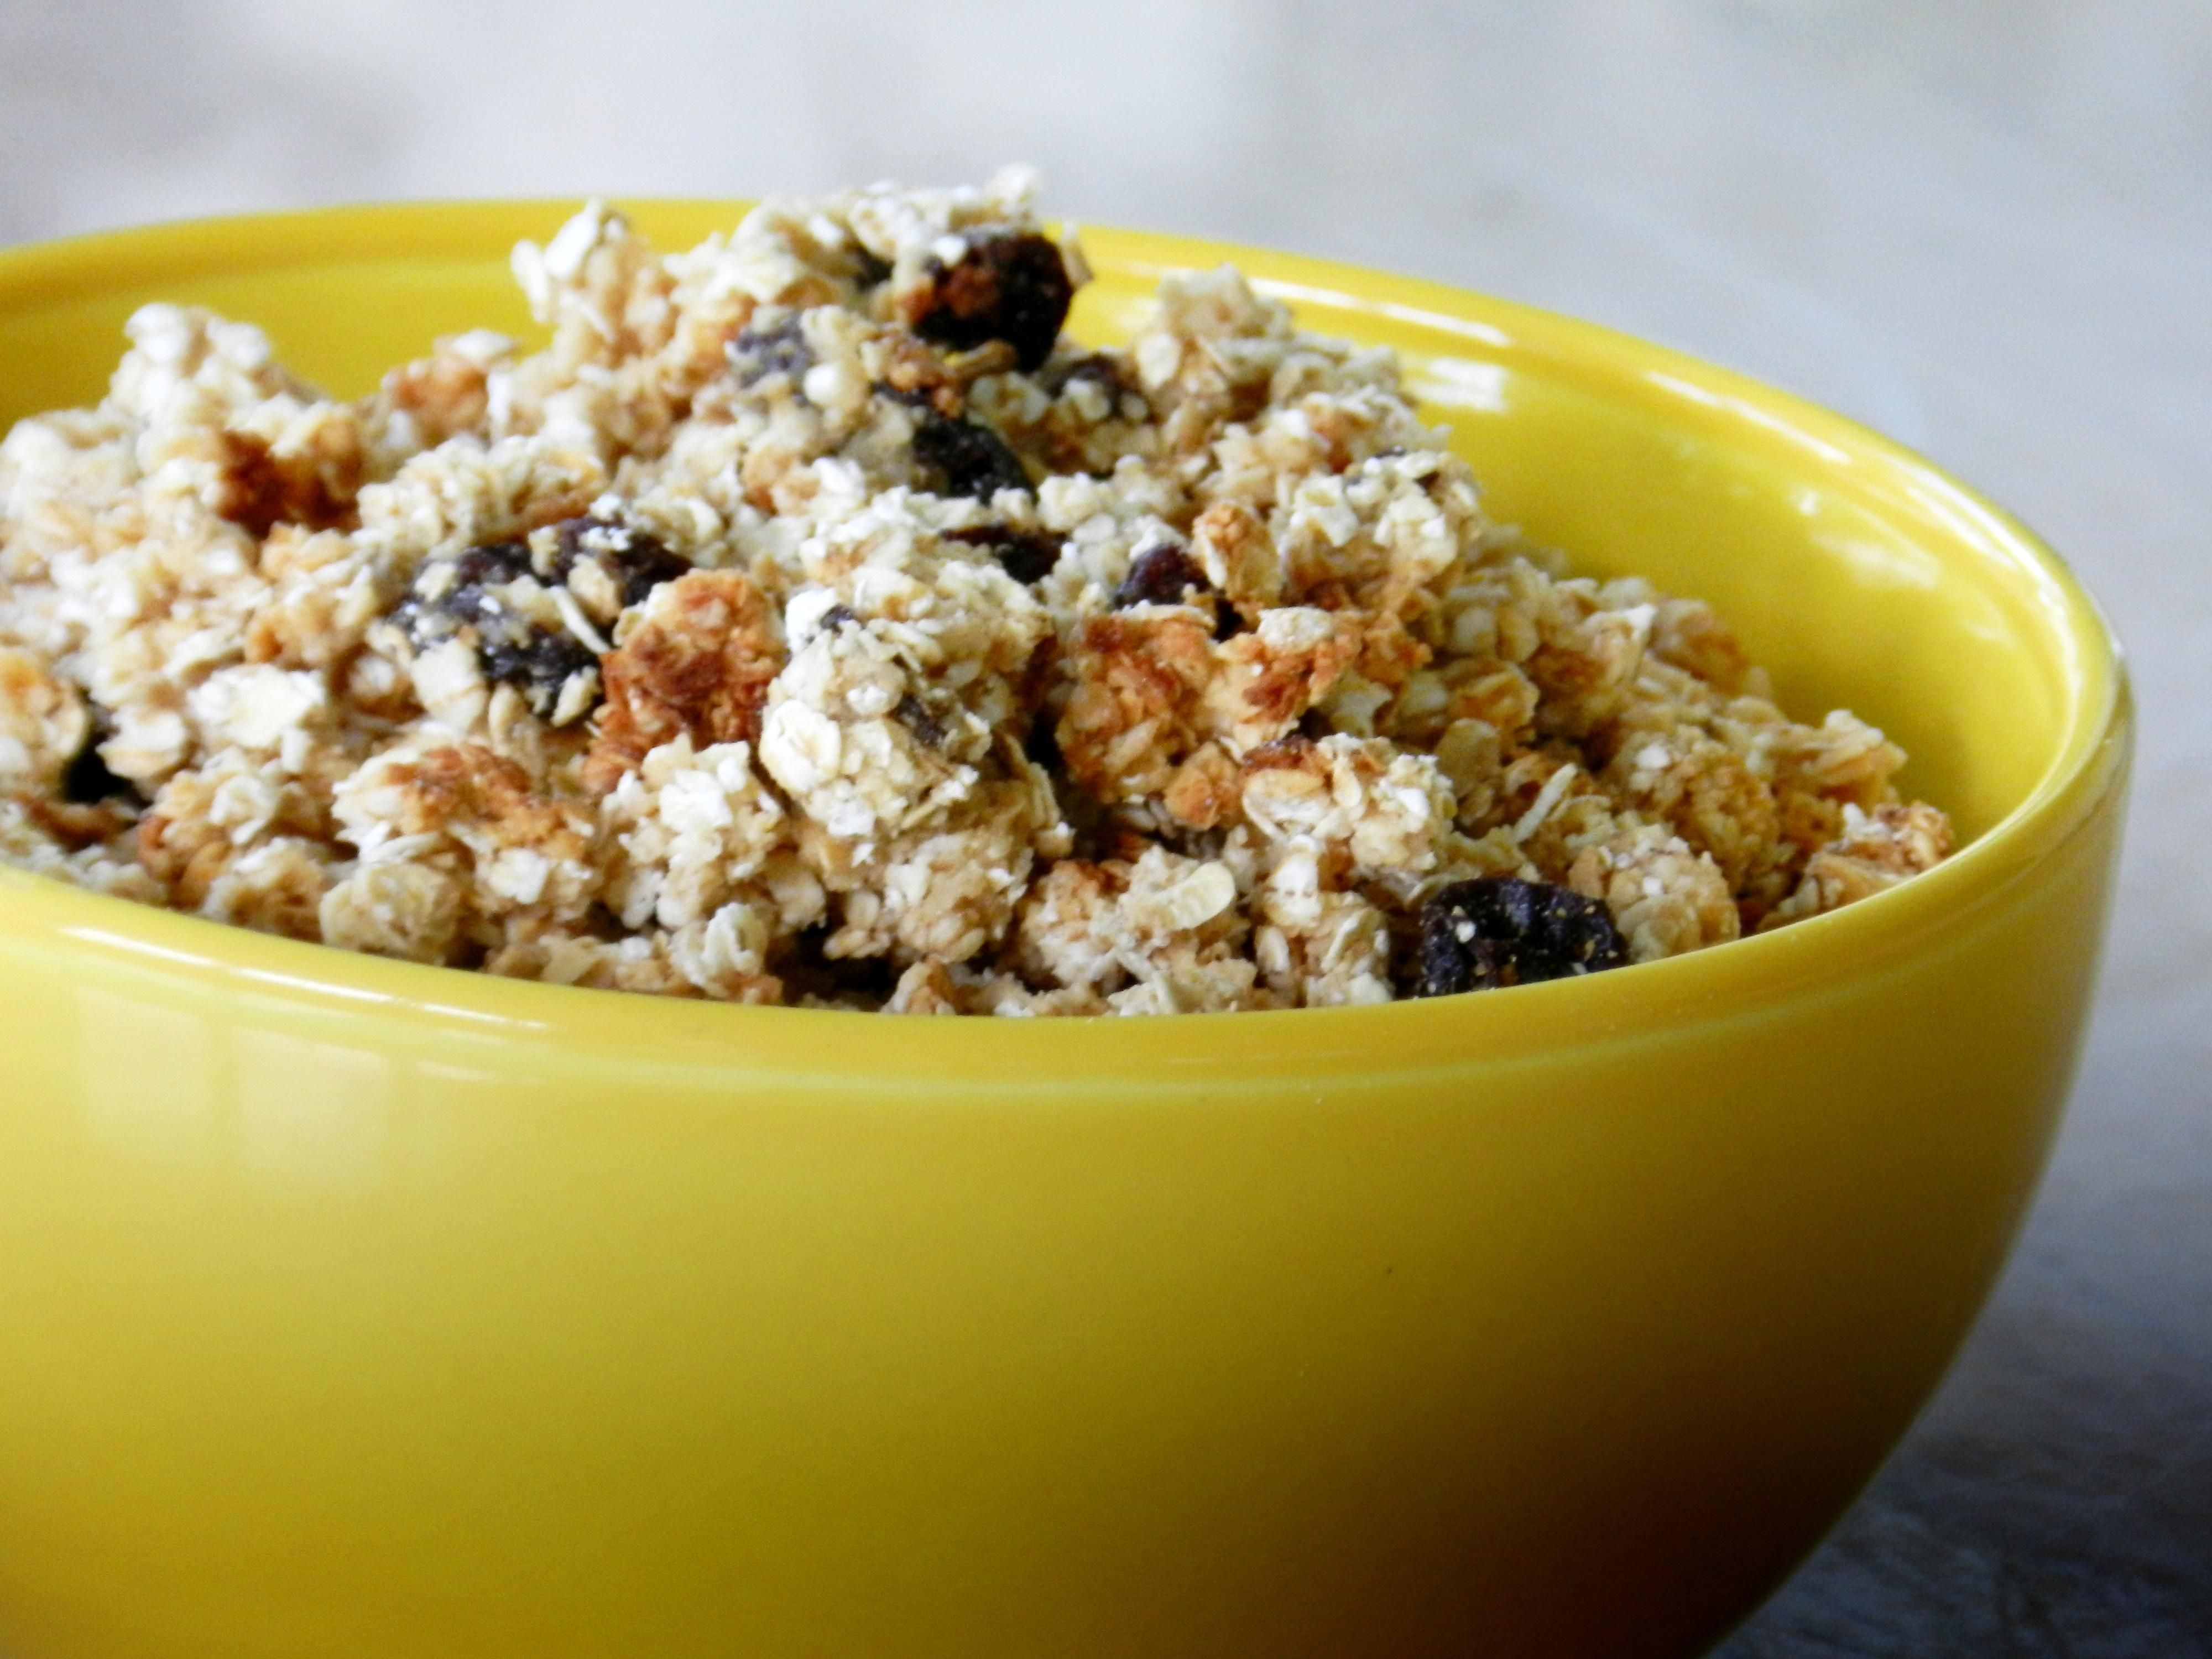 How to Make Your Own Granola - You Can Do It!